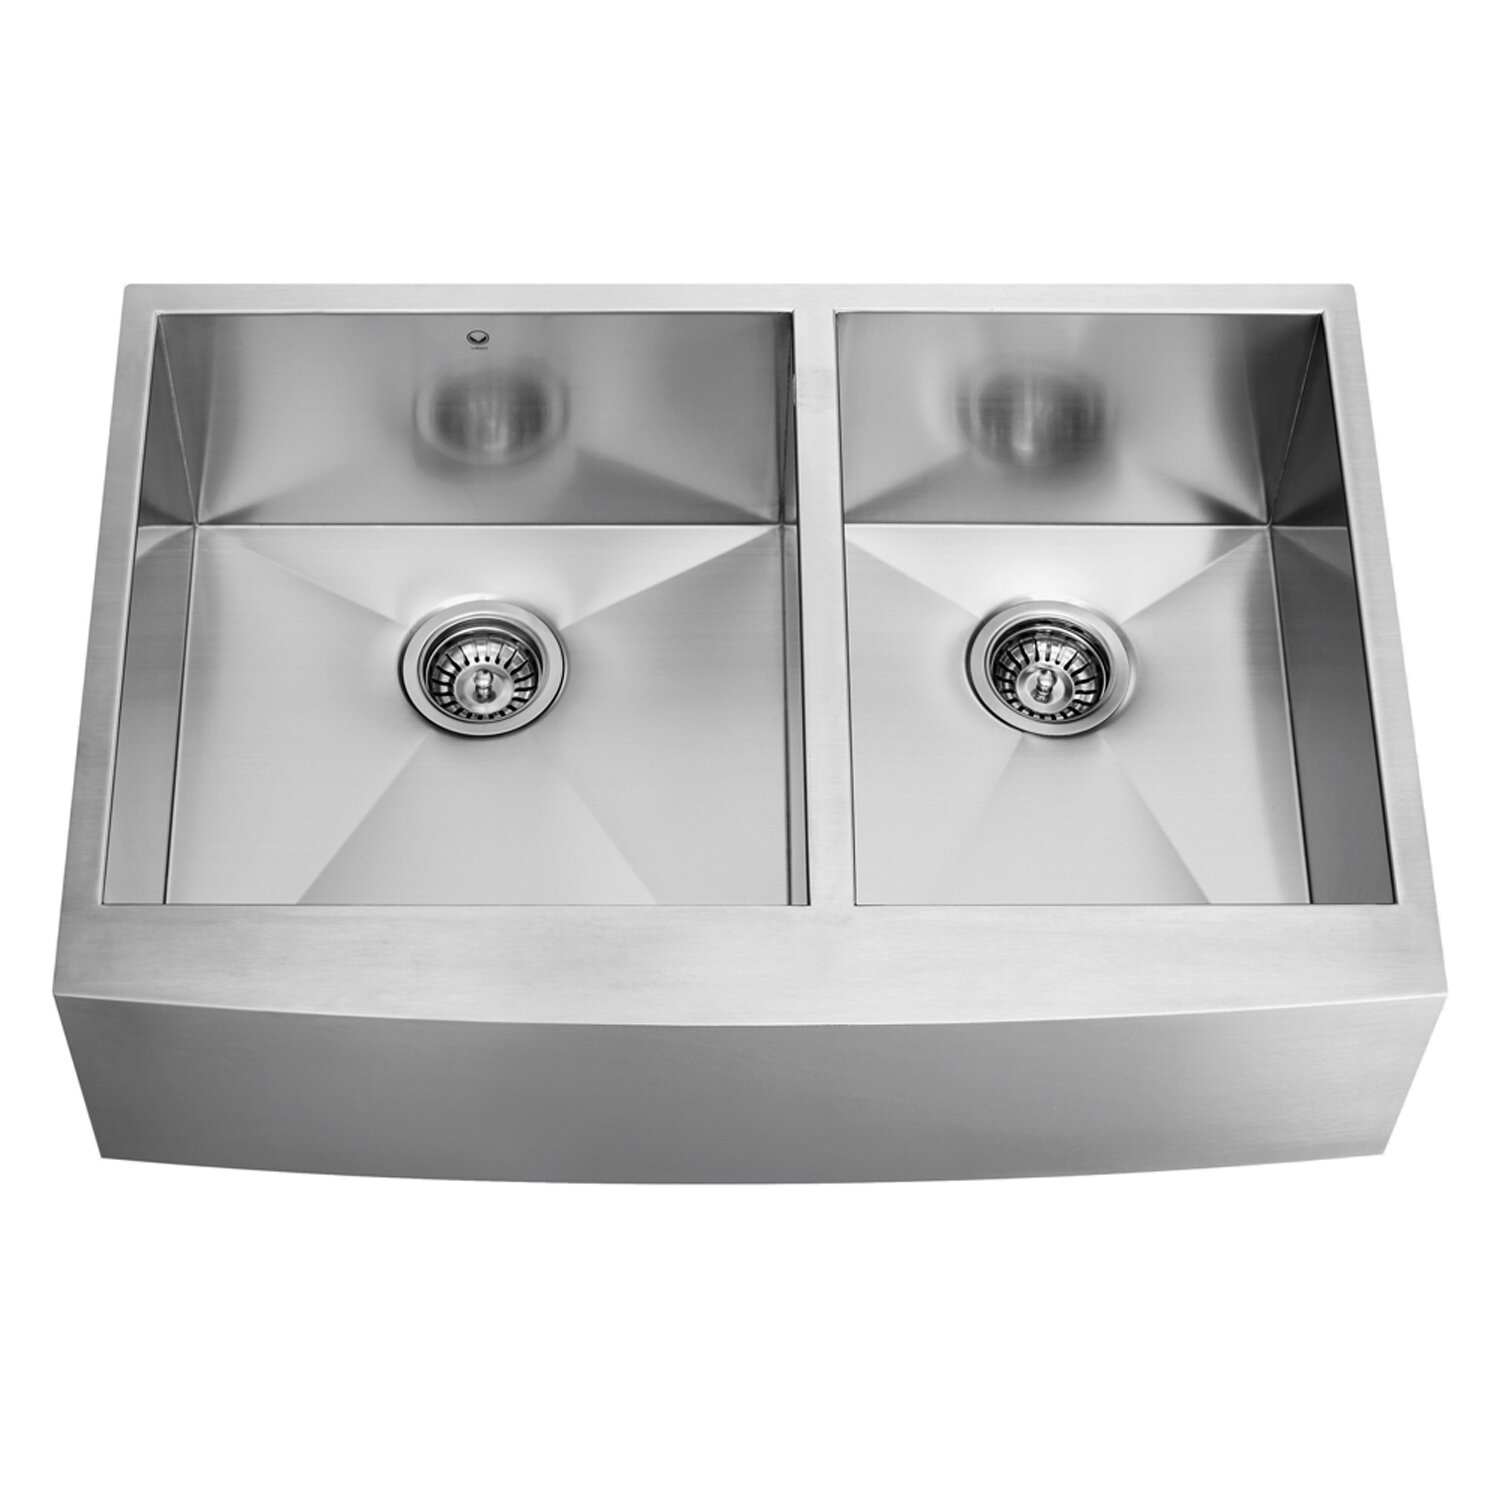 20 Inch Farmhouse Sink : 36 inch Farmhouse Apron 60/40 Double Bowl 16 Gauge Stainless Steel ...